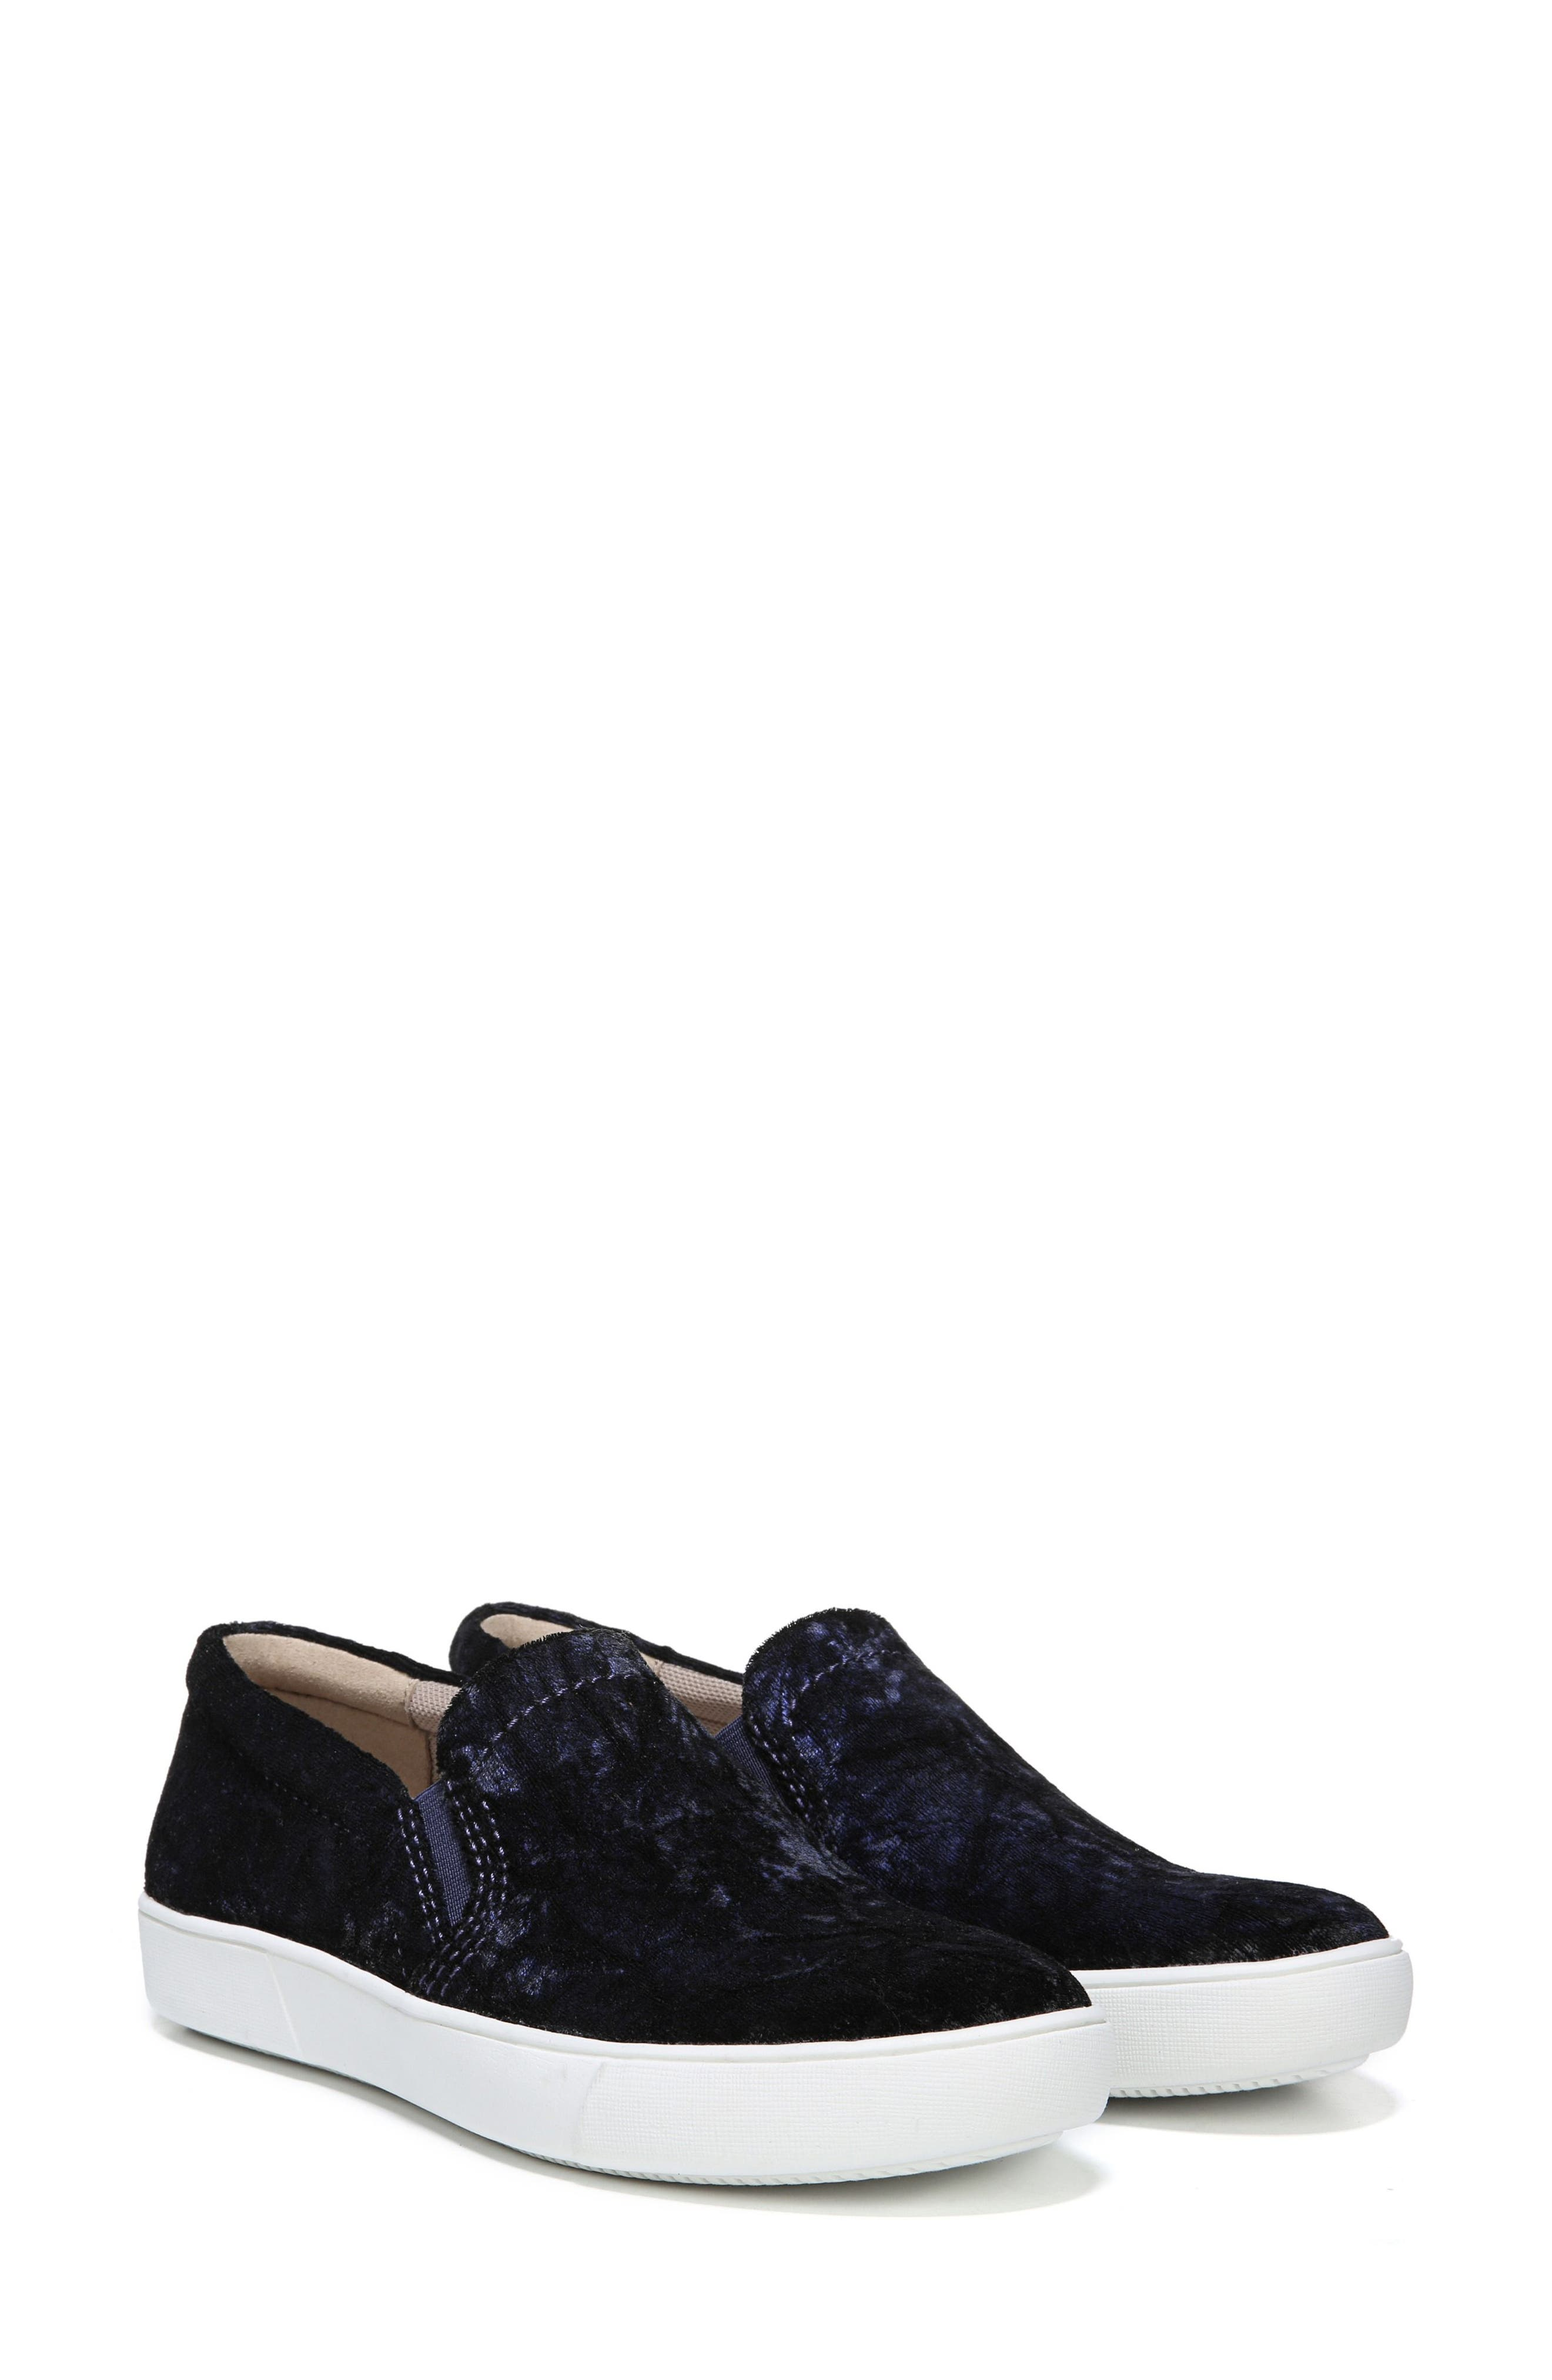 NATURALIZER, Marianne Slip-On Sneaker, Alternate thumbnail 6, color, NAVY VELVET